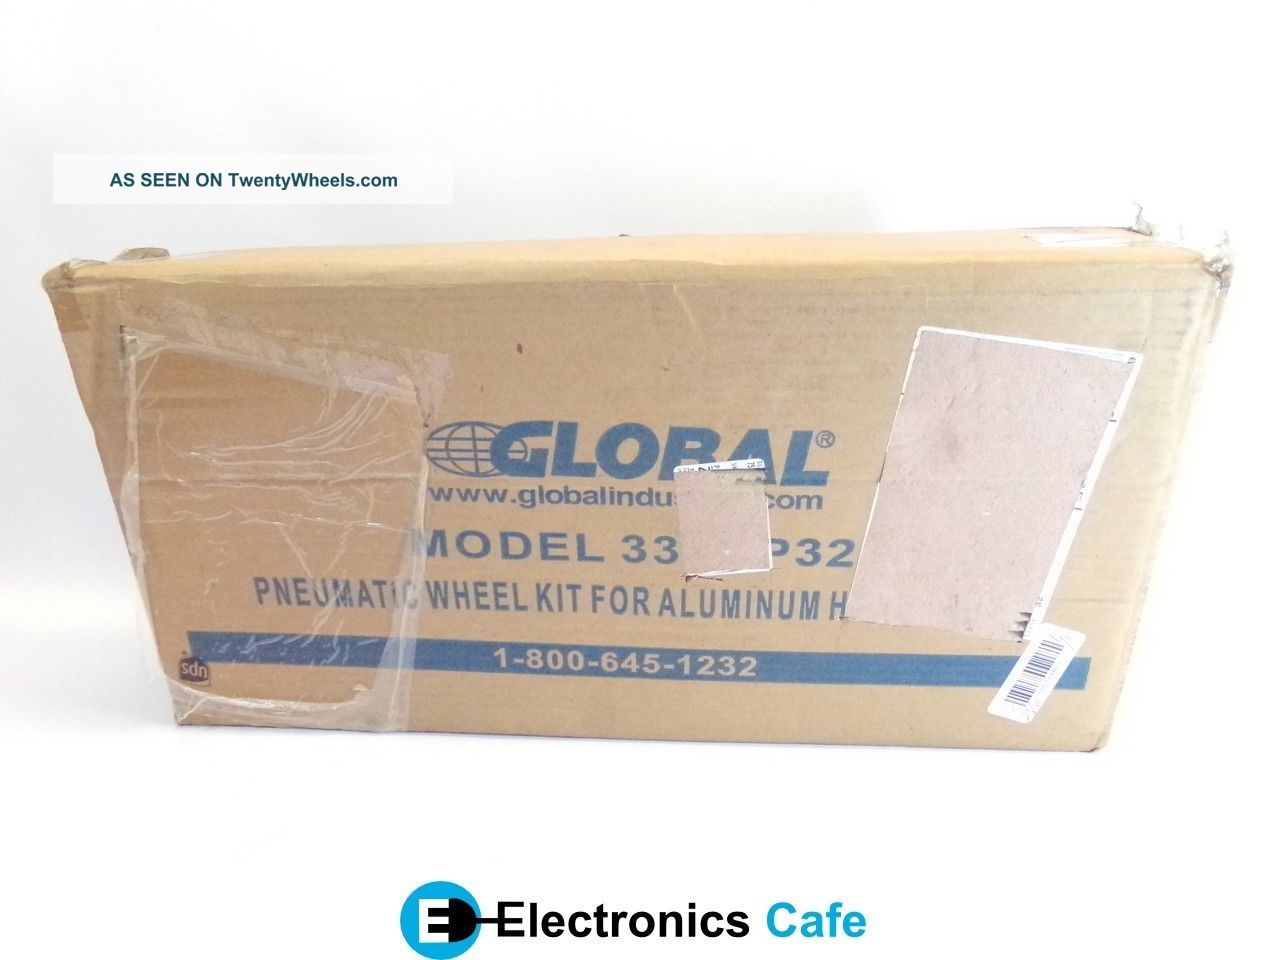 Global 330cp32 Pneumatic Wheel Kit For Aluminum Hand Truck Item See more Global 330CP32 Pneumatic Wheel Kit for Aluminu... photo